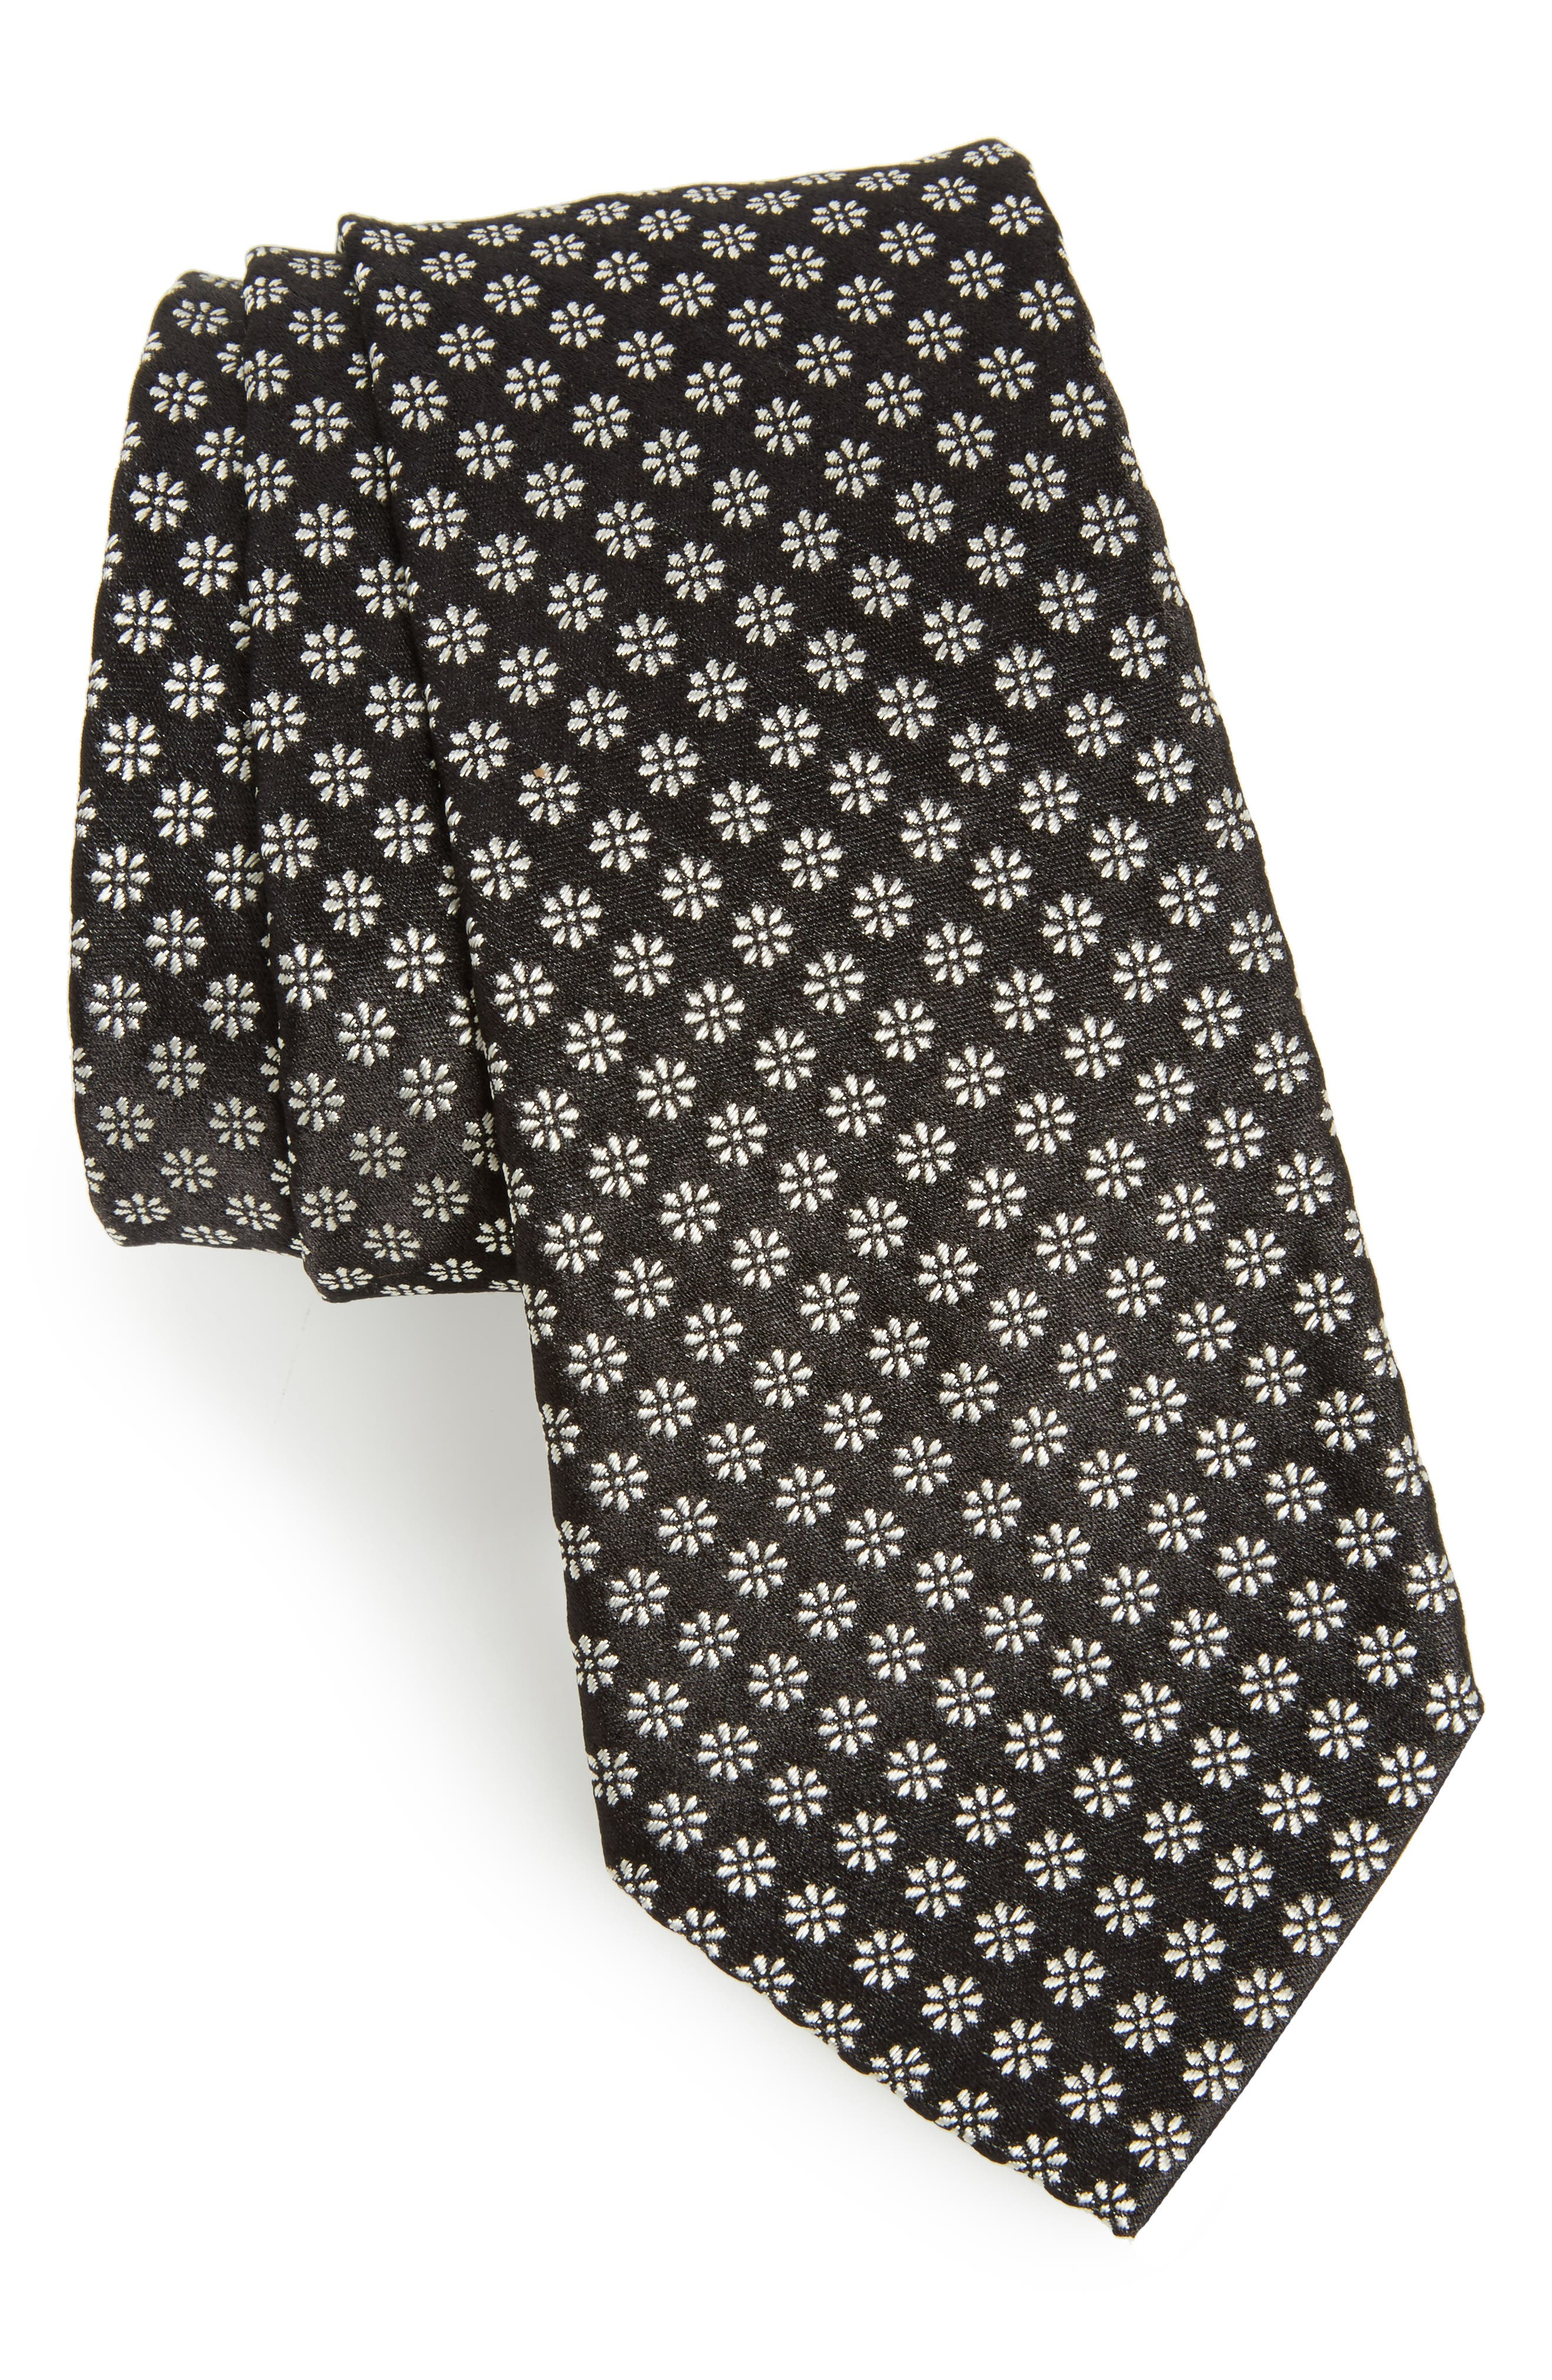 Floral Print Skinny Tie,                         Main,                         color, 001